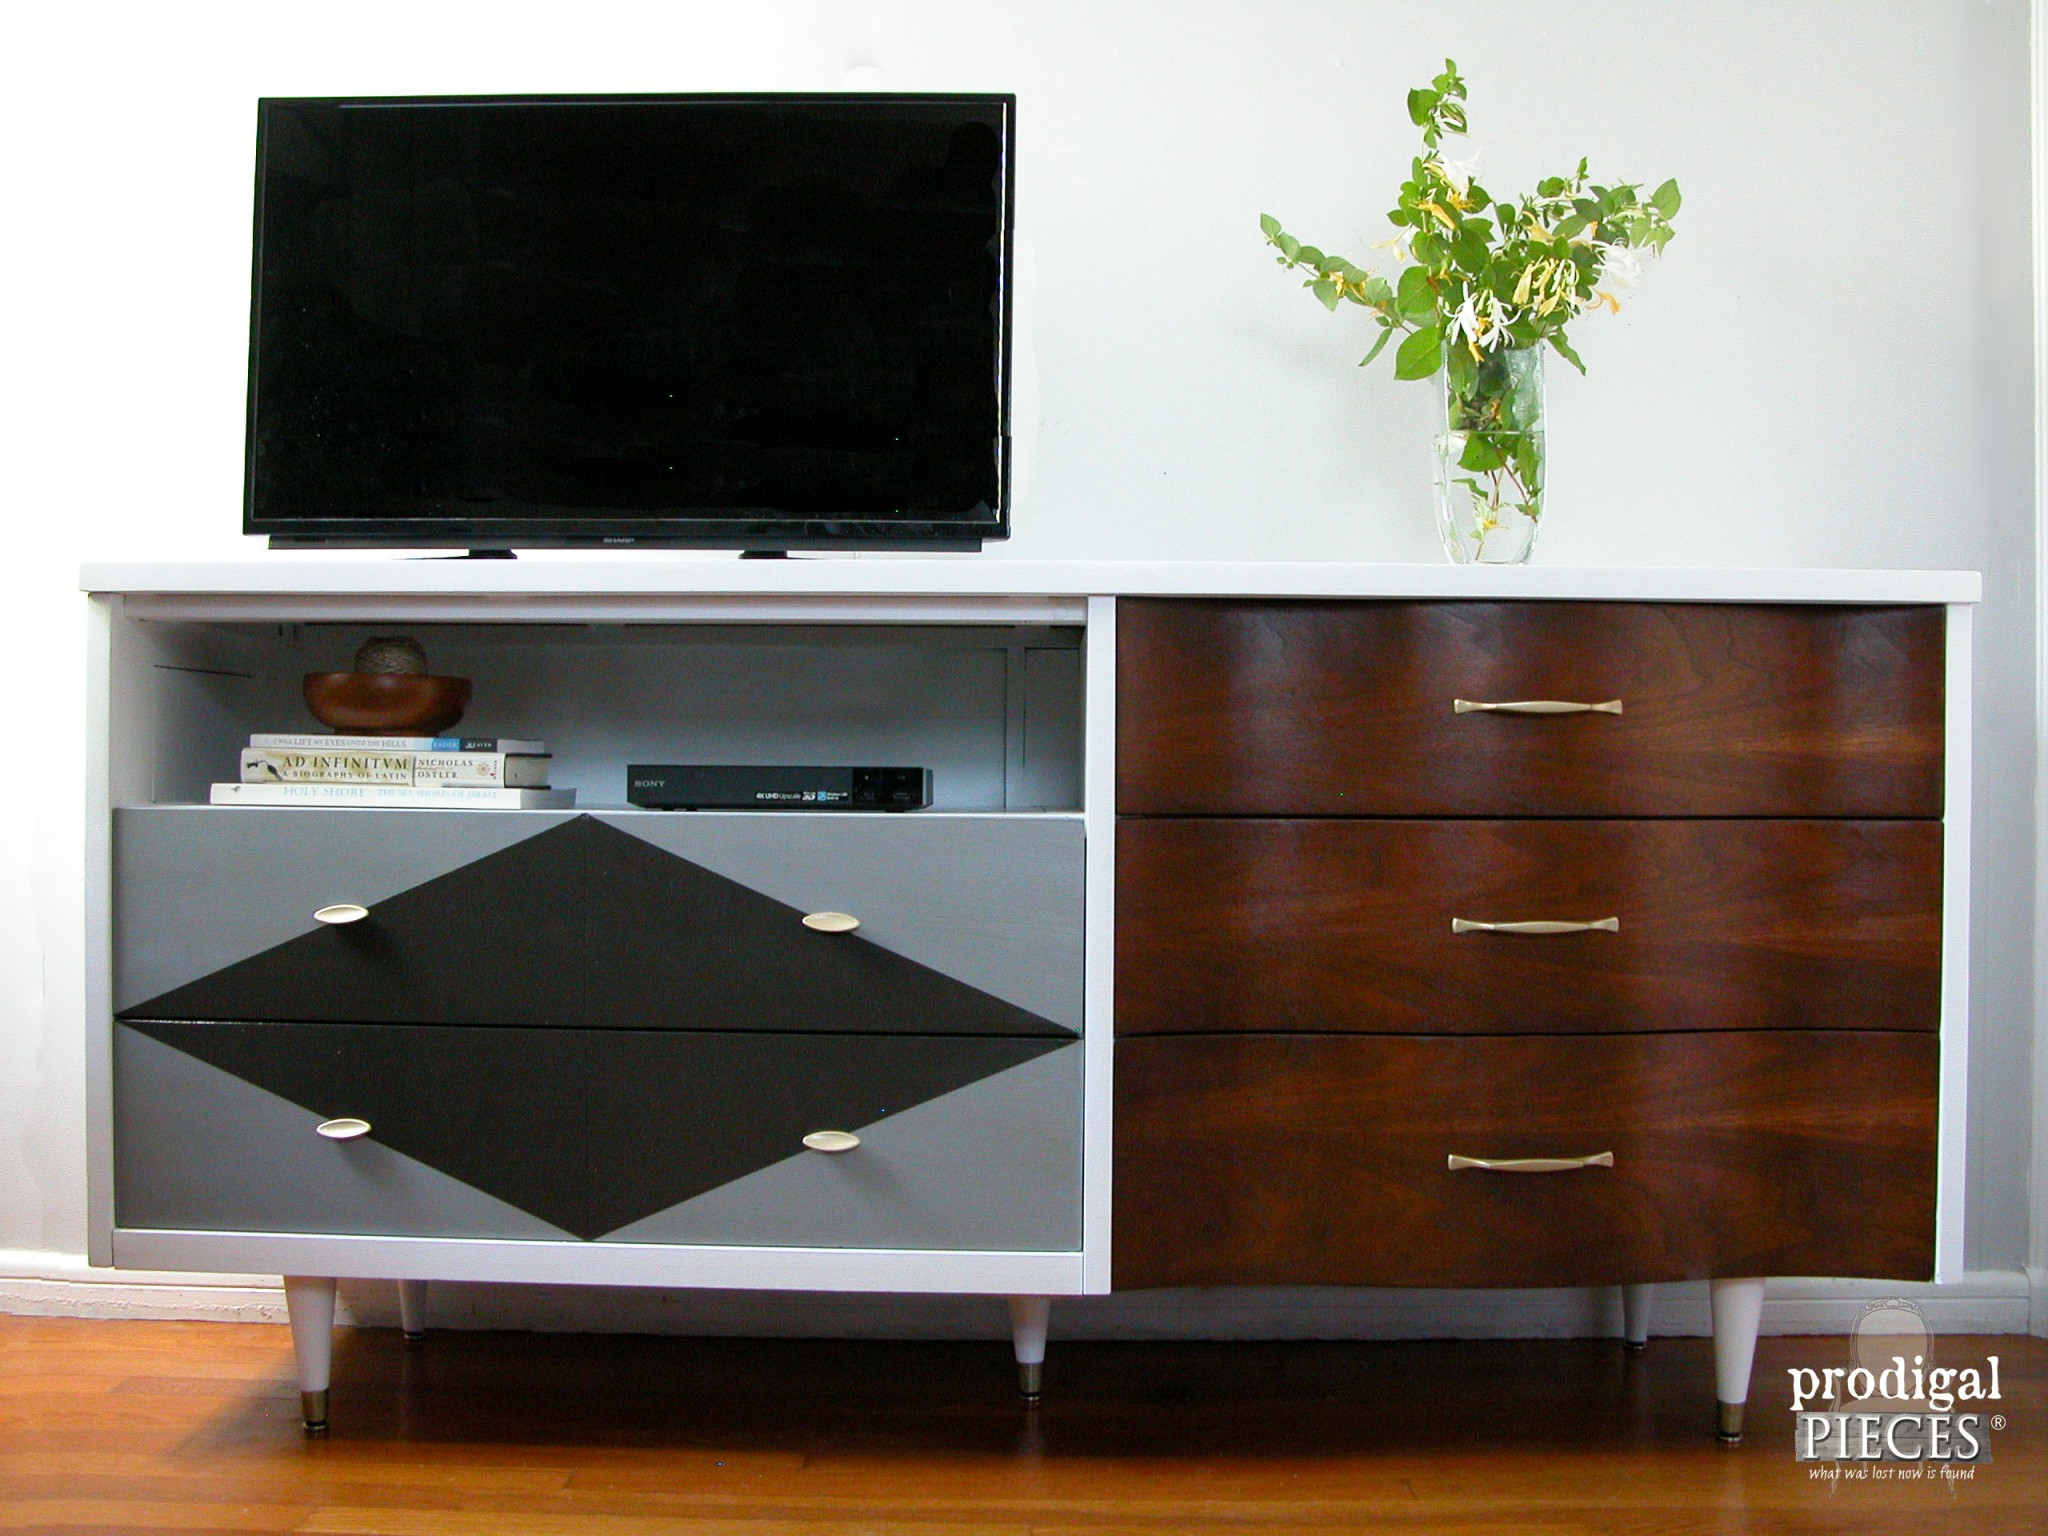 Mid Century Modern Entertainment Console Credenza by Prodigal Pieces | www.prodigalpieces.com